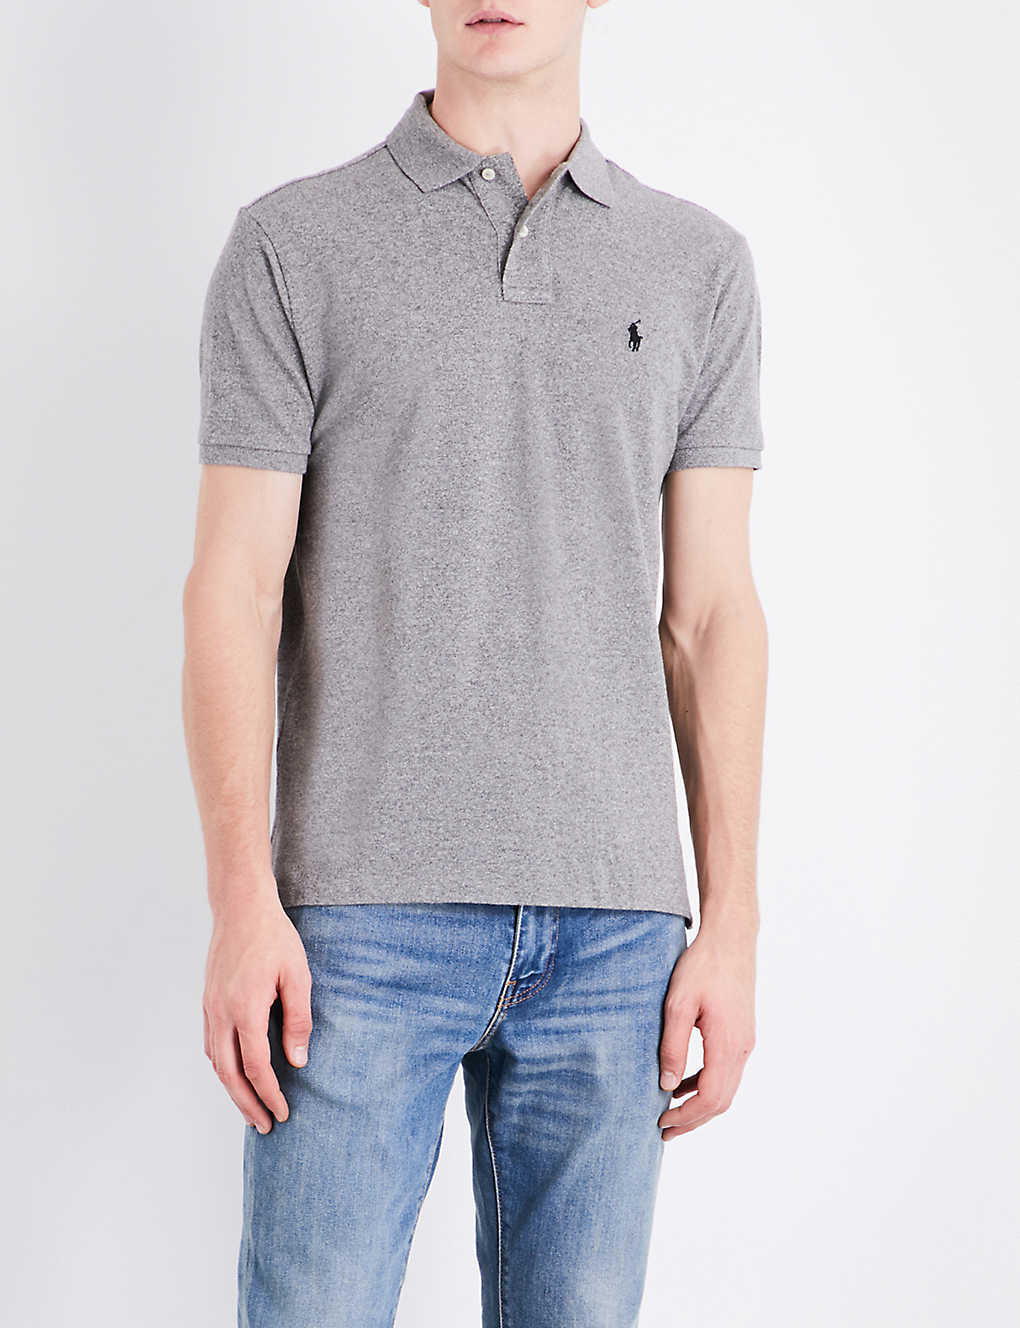 1801a395 POLO RALPH LAUREN - Custom-fit cotton-pique polo shirt | Selfridges.com